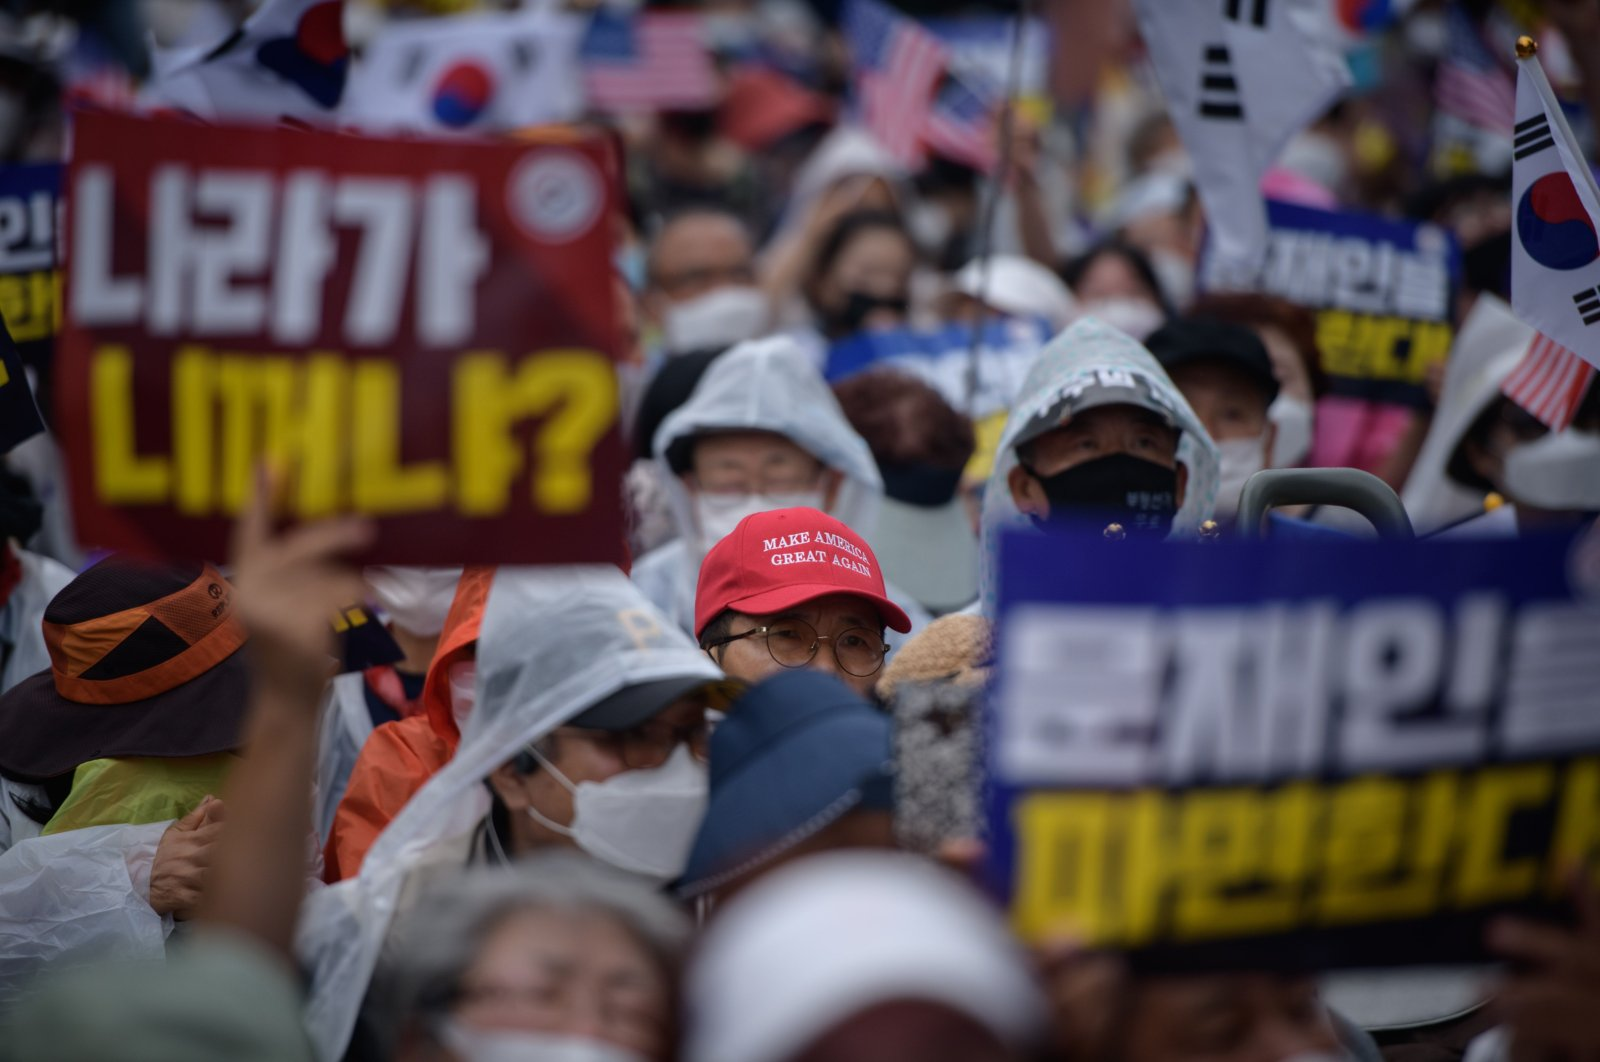 Protesters rally during anti-government protest in the central Gwanghwamun area of Seoul, South Korea, Aug. 15, 2020. (AFP Photo)